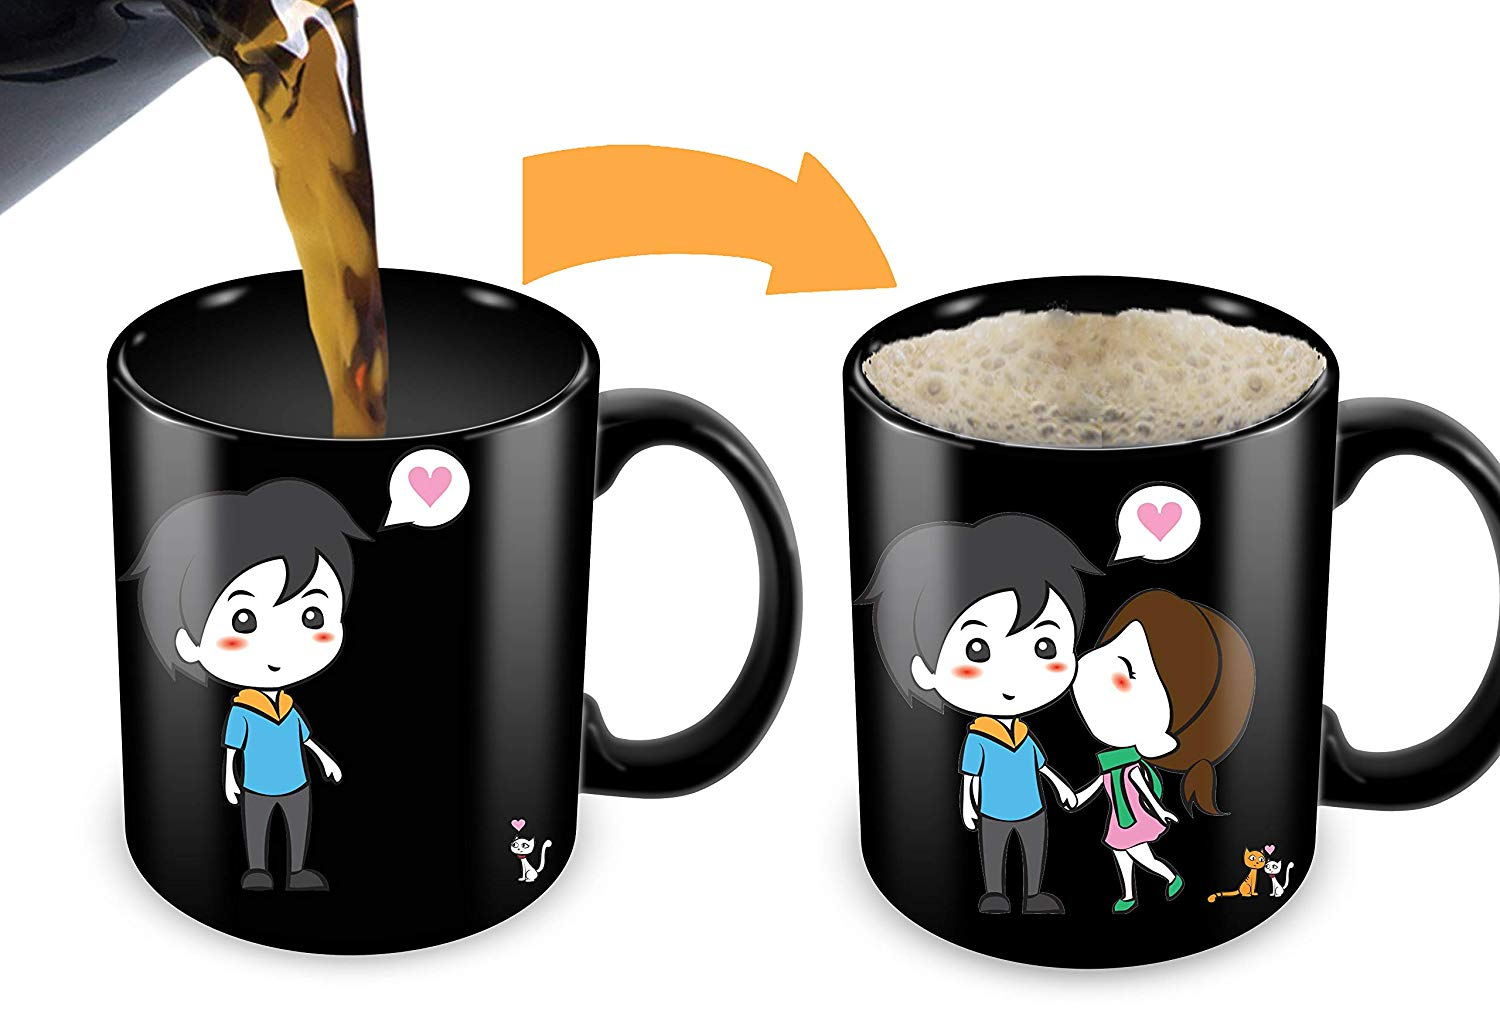 Heat Sensitive Mug Color Changing Coffee Funny Cup Lovely Cartoon Couples Design Birthday Gift